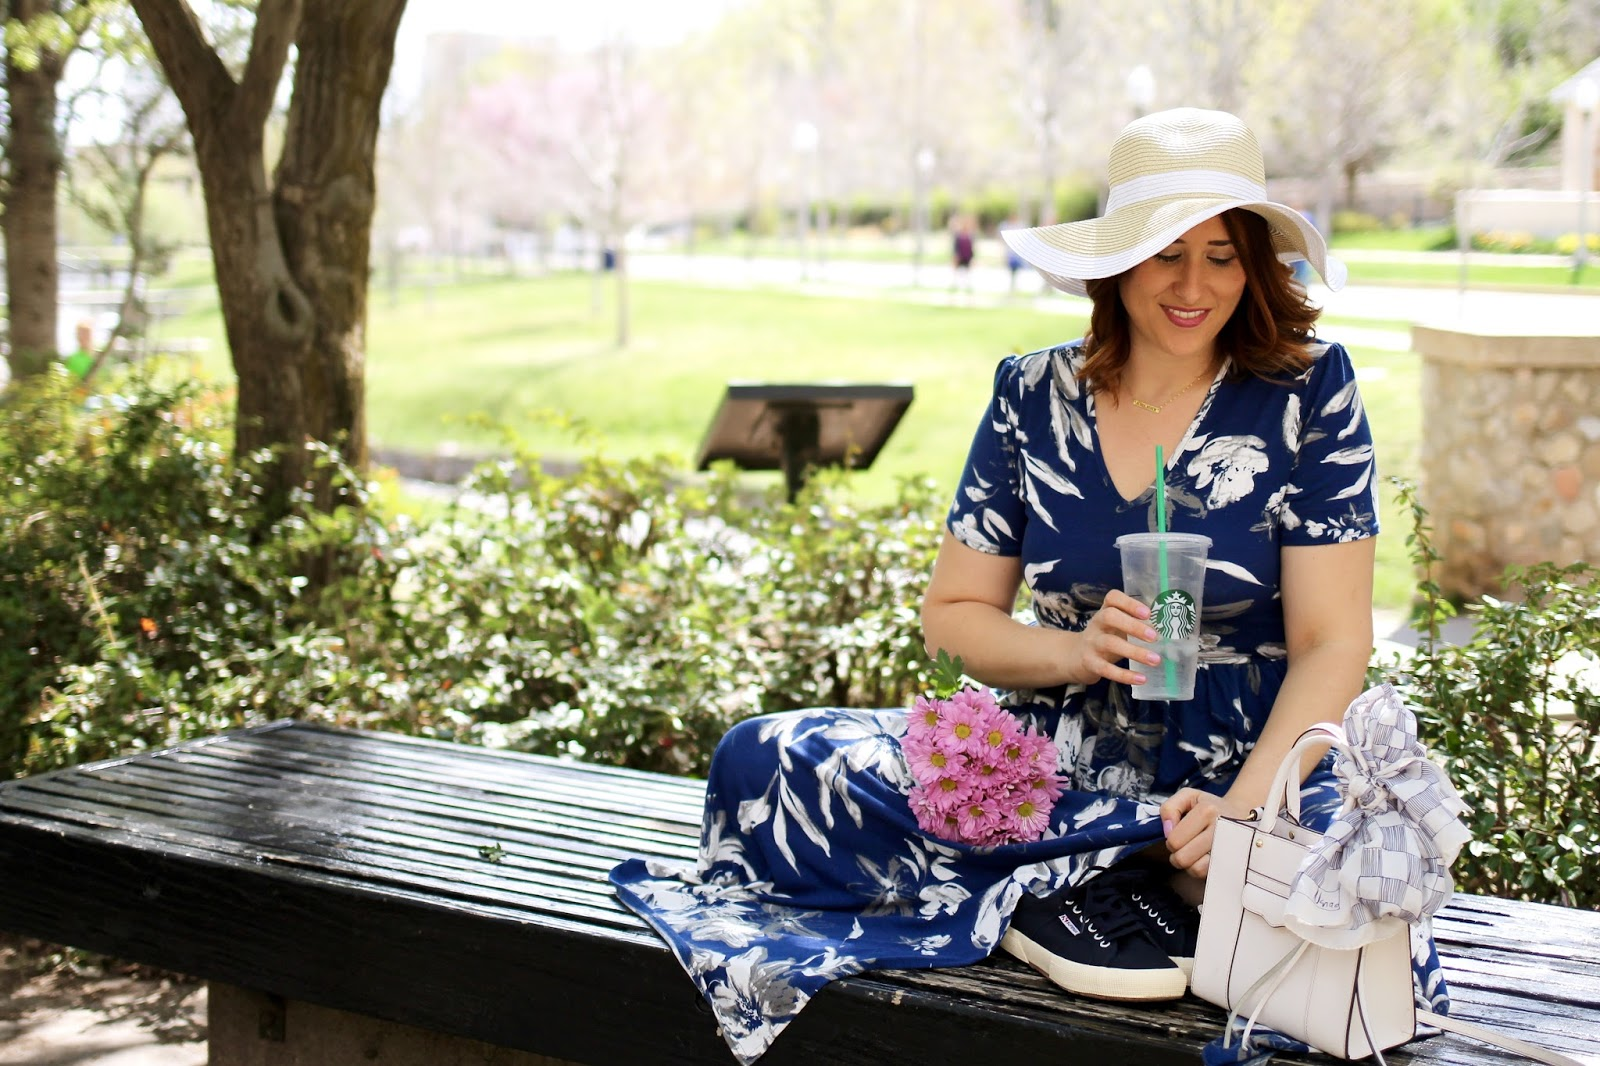 rebecca minkoff mini mab tote white, floral maxi dress, pink flowers, park bench, casual outfit, sun hat